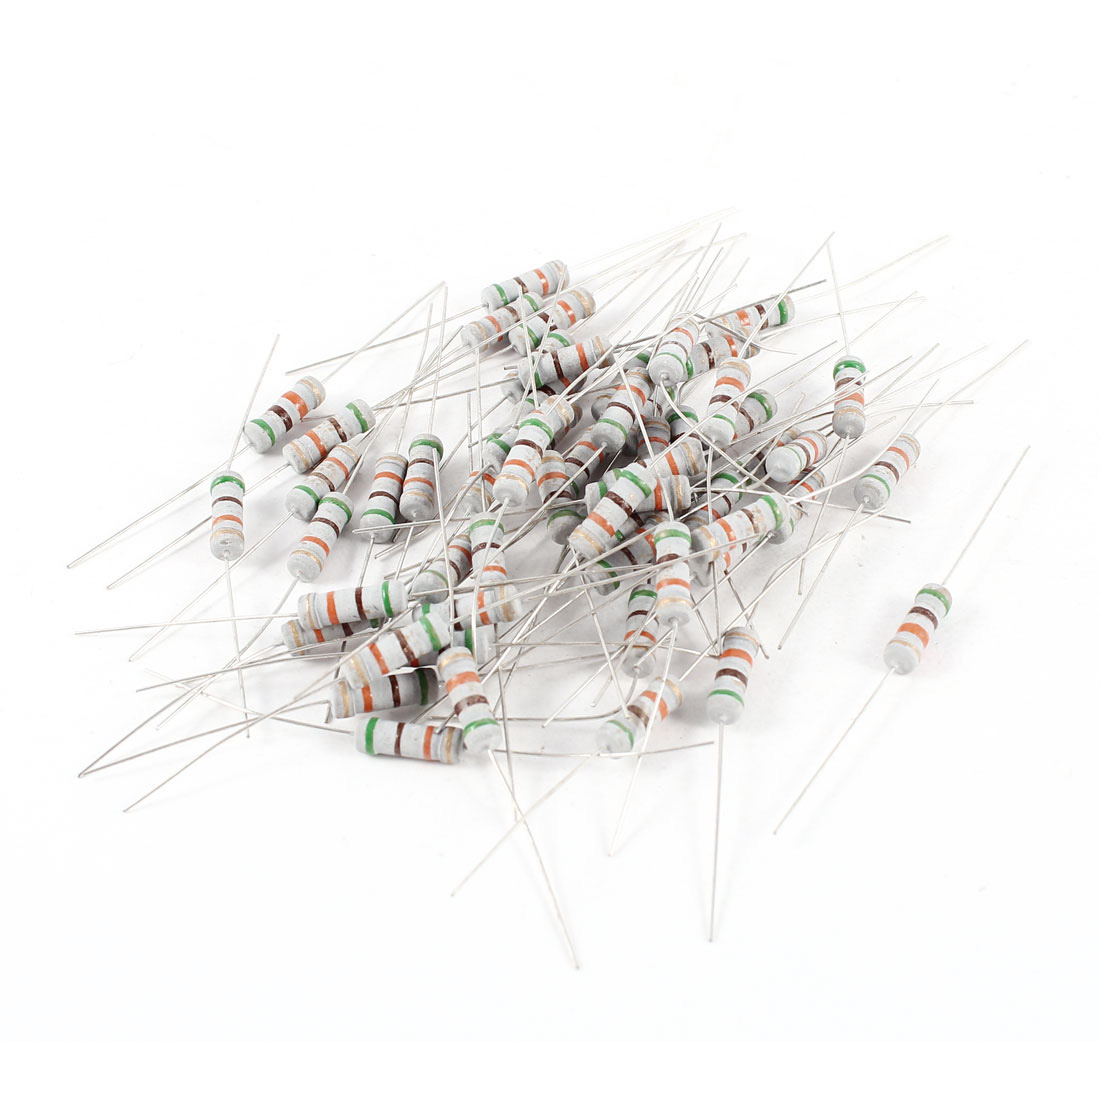 60 Pcs Through Hole Axial Lead Carbon Film Resistor 51K Ohm 5% 1 Watt